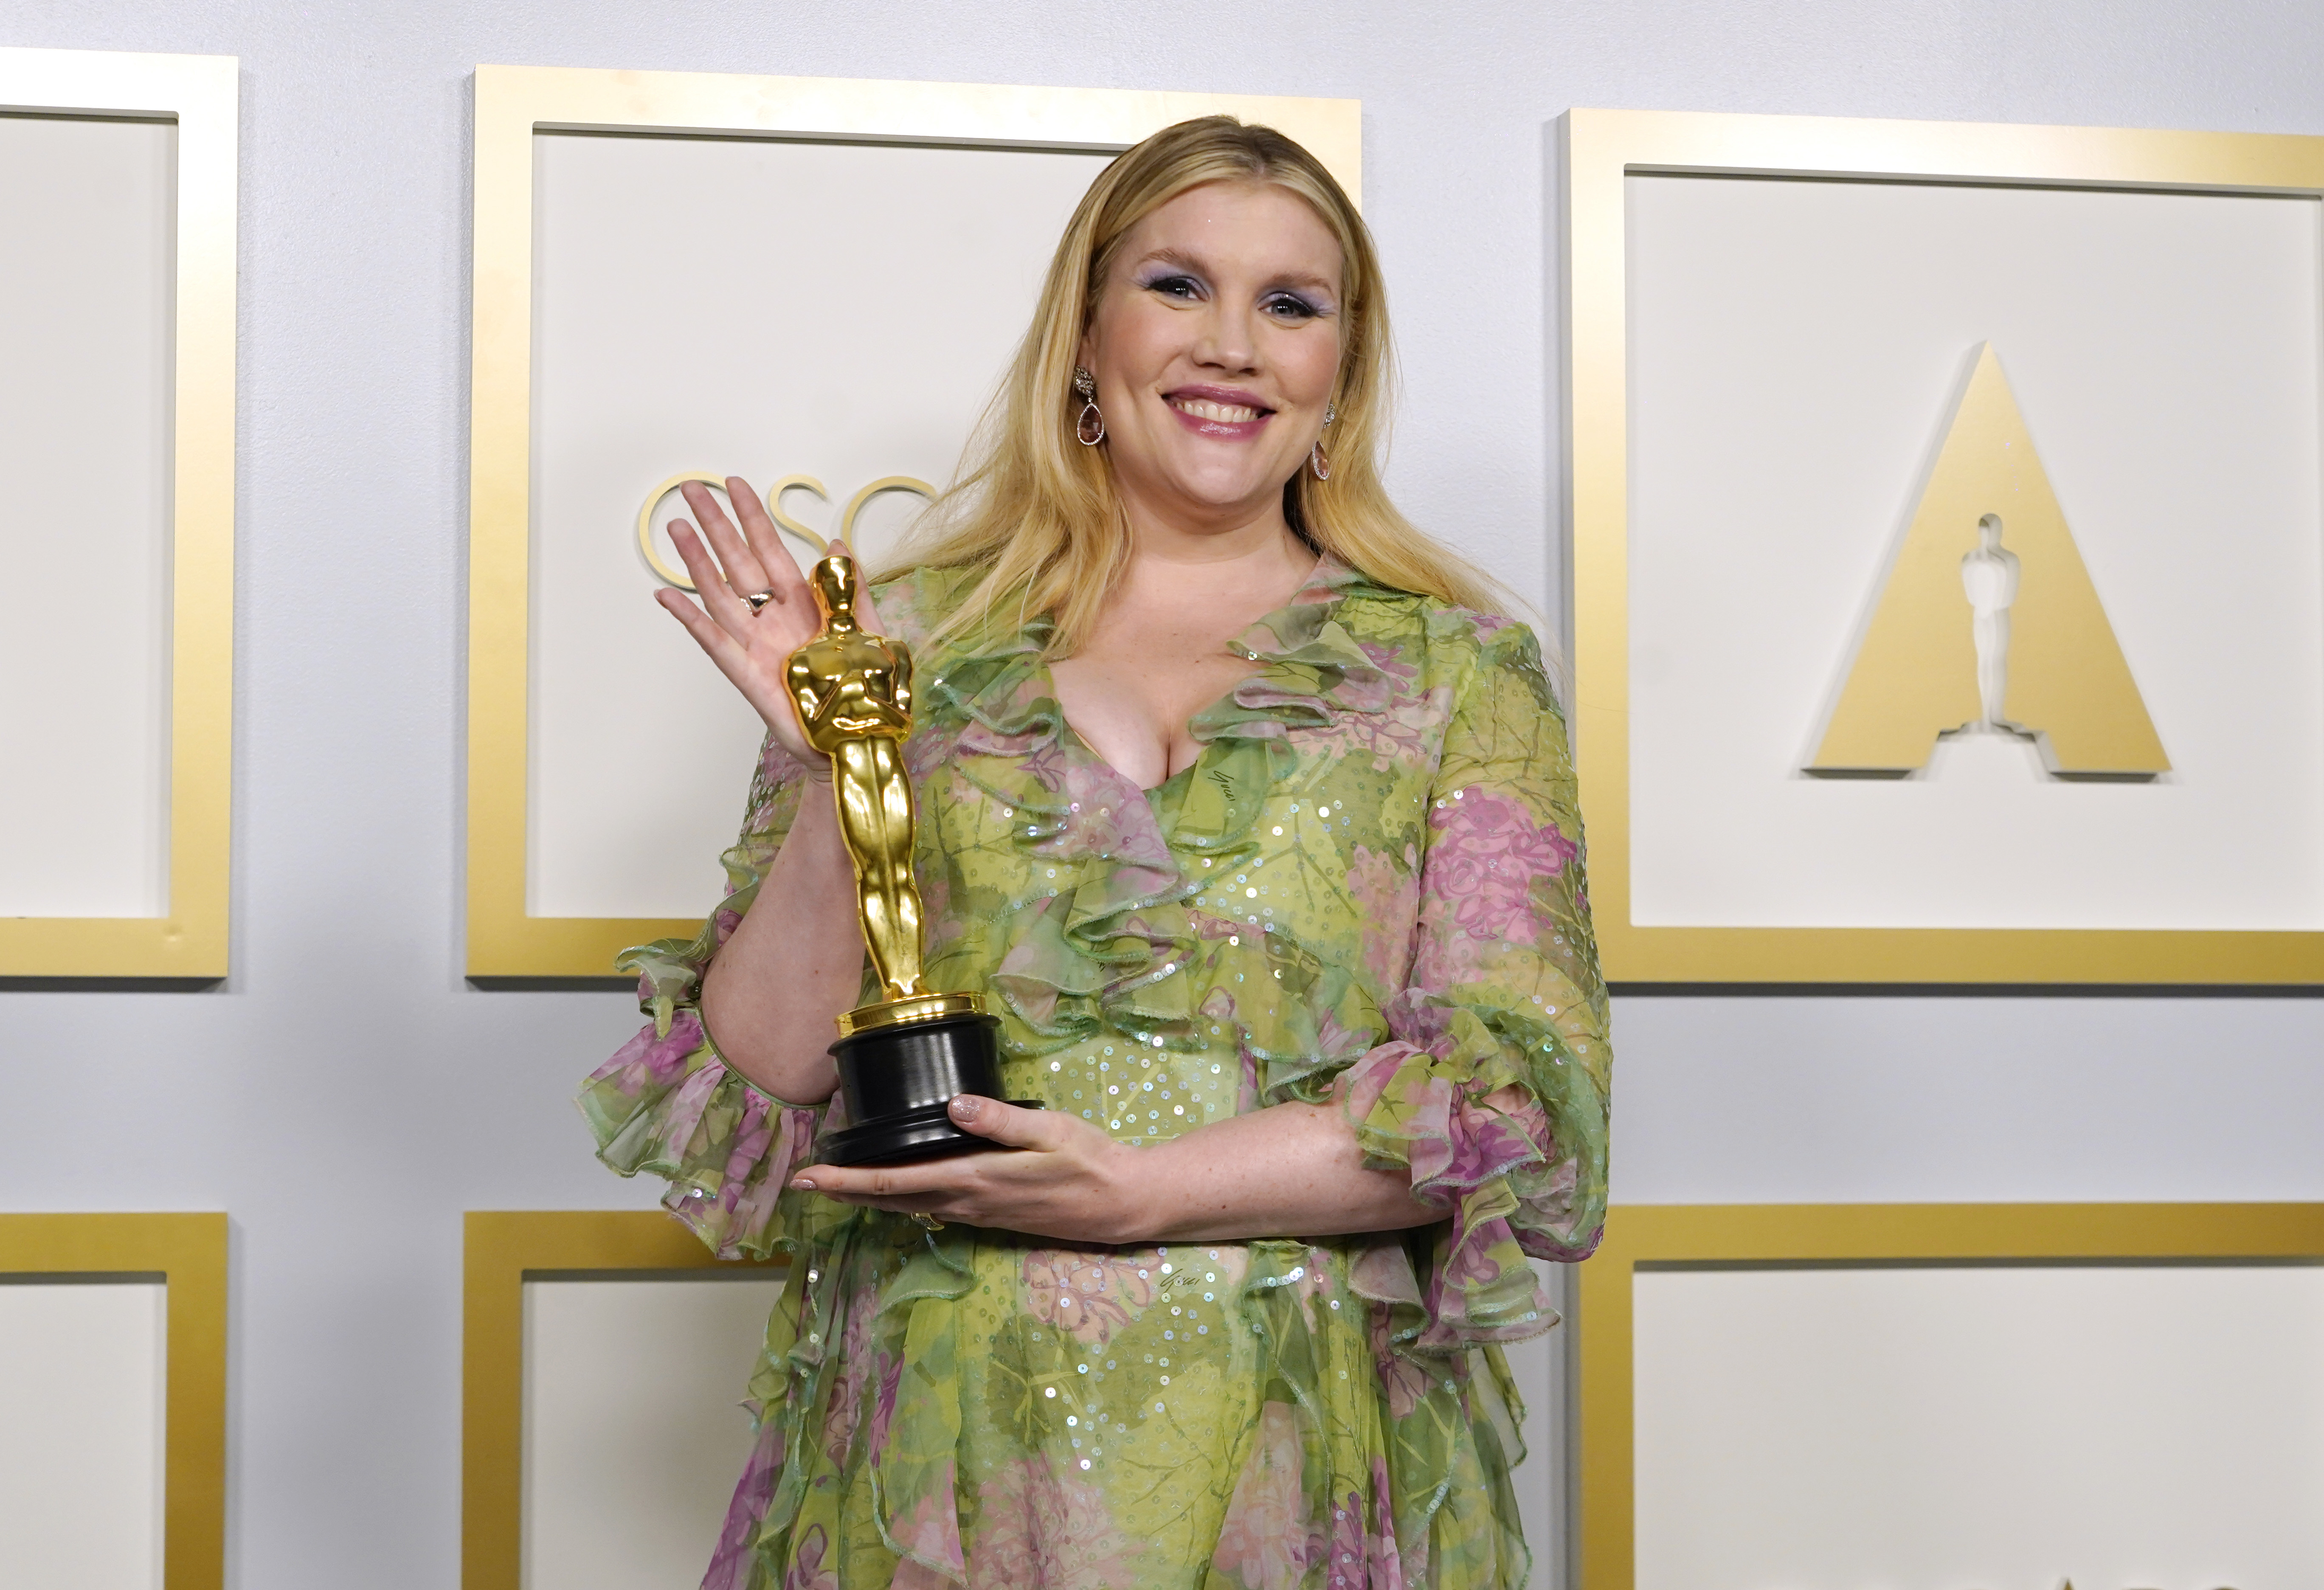 Emerald Fennell, winner of Best Original Screenplay for  Promising Young Woman,  poses at the Oscars on Sunday, April 25, 2021